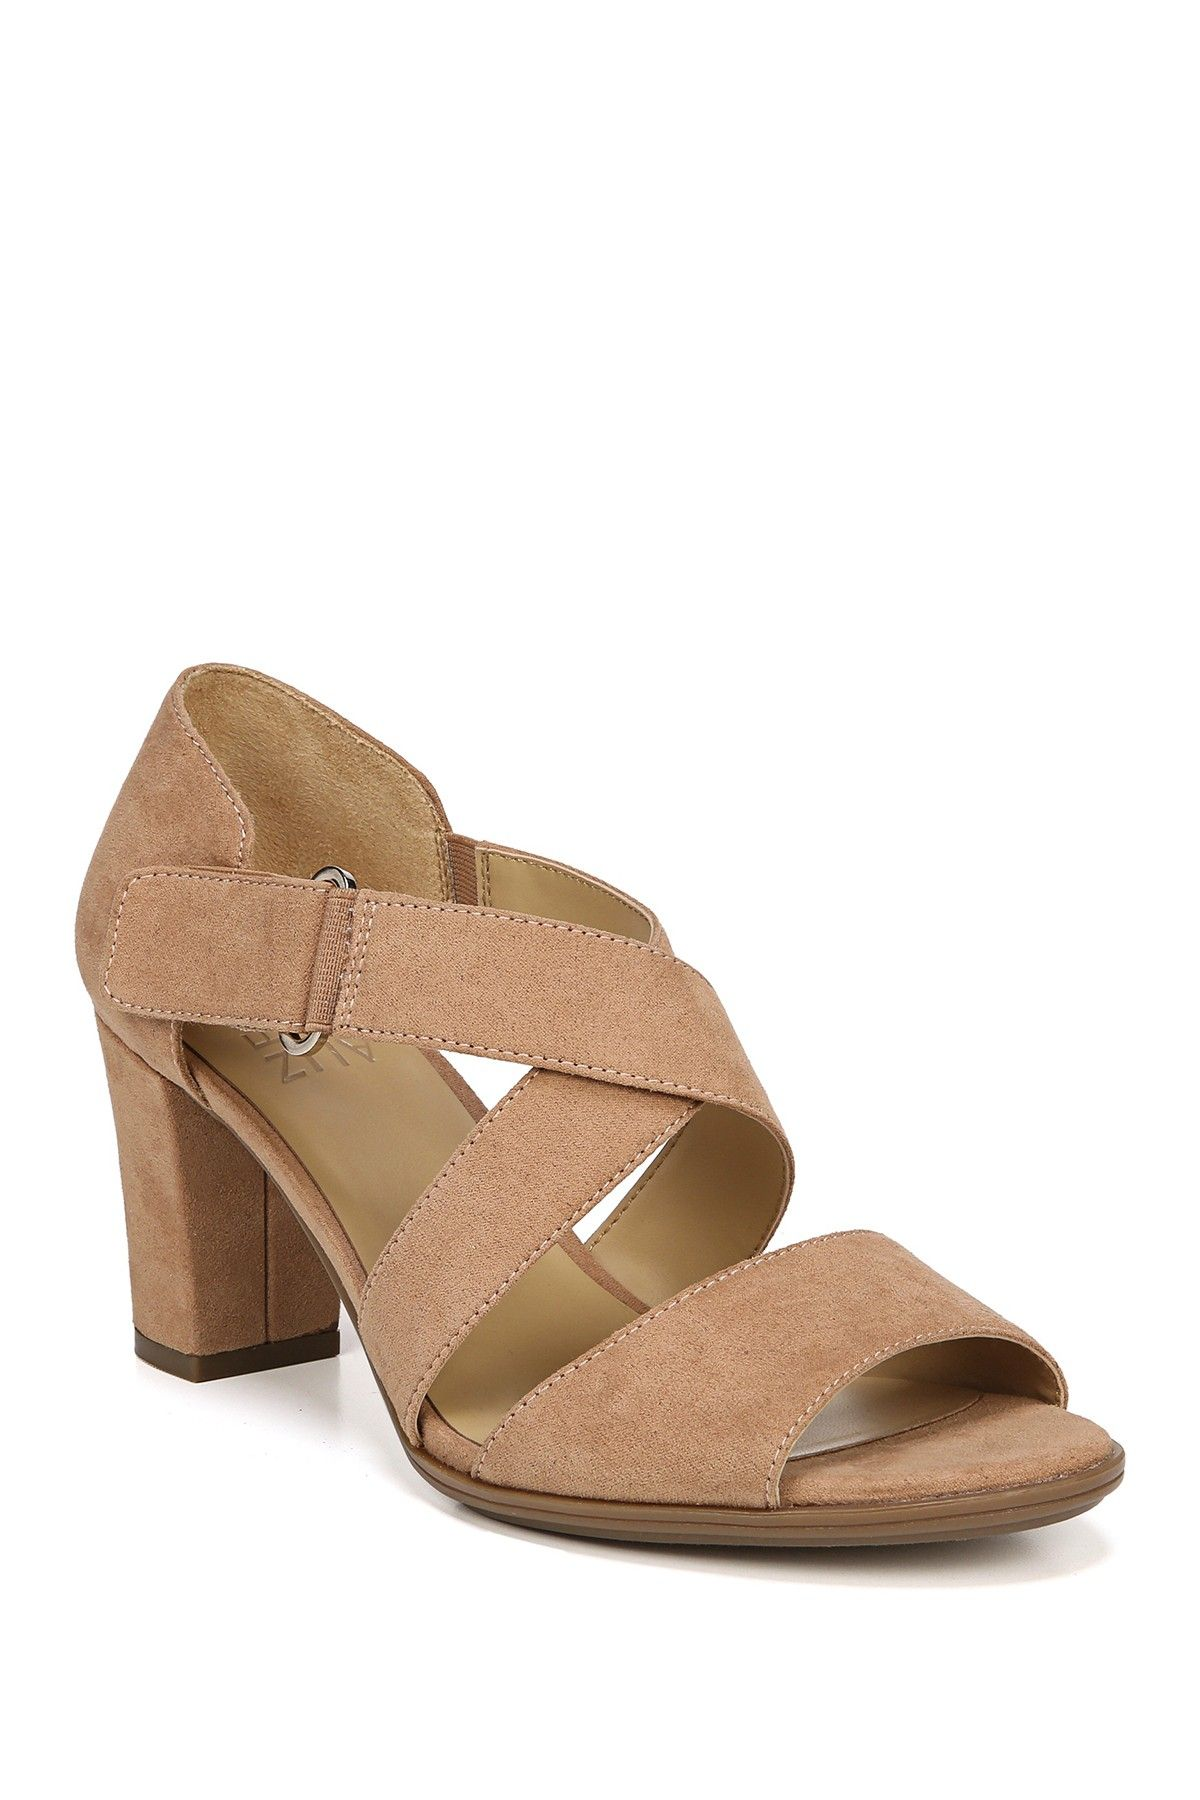 Love the style of these sandals Lindy Sandal Wide Width